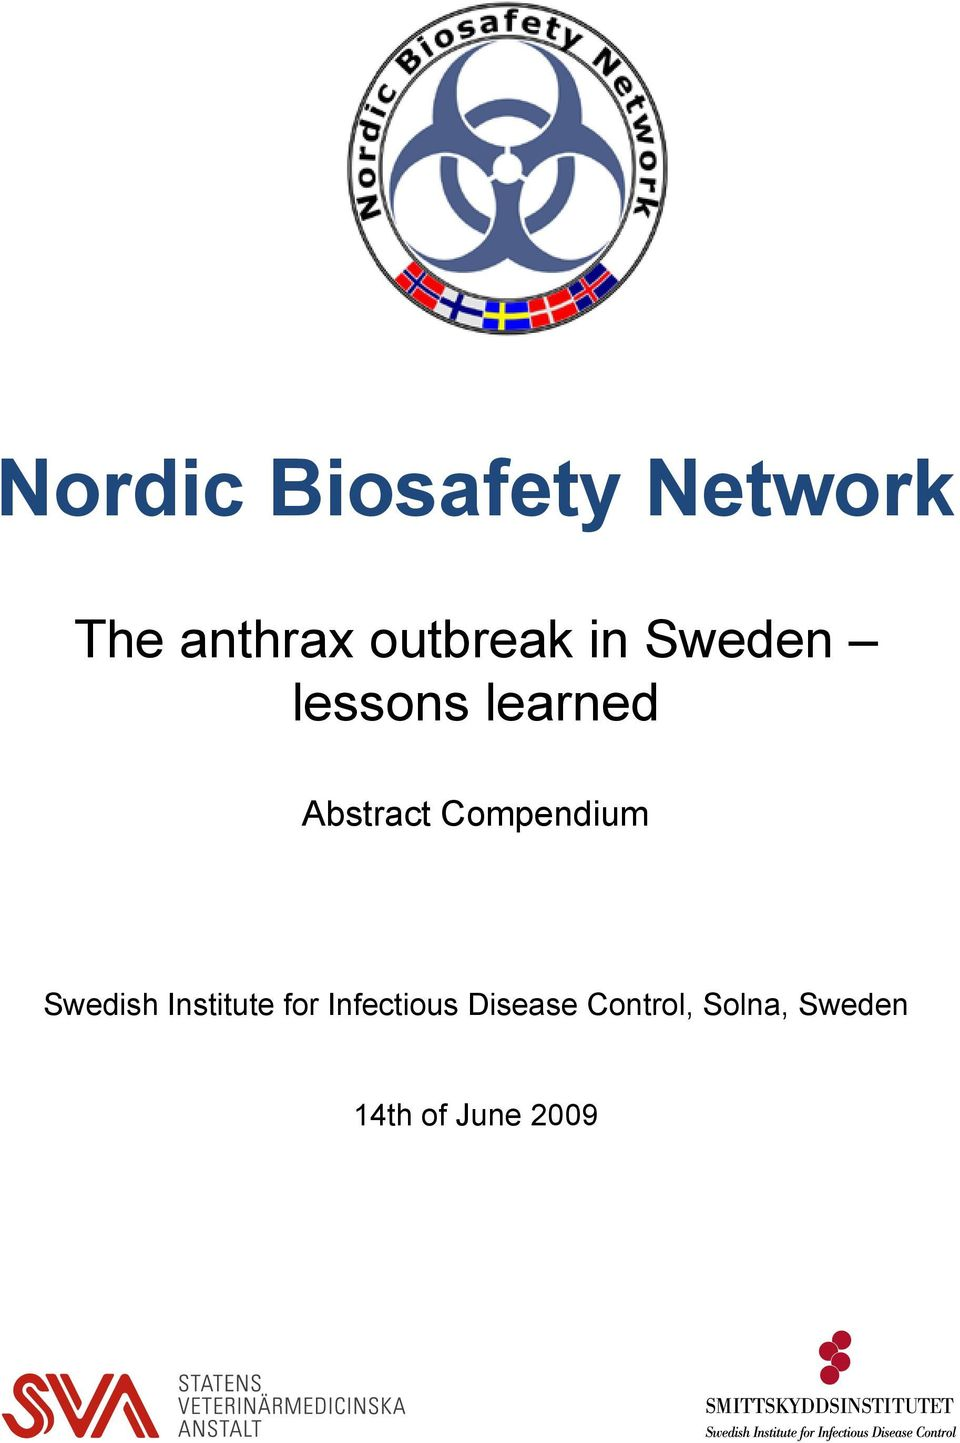 Swedish Institute for Infectious